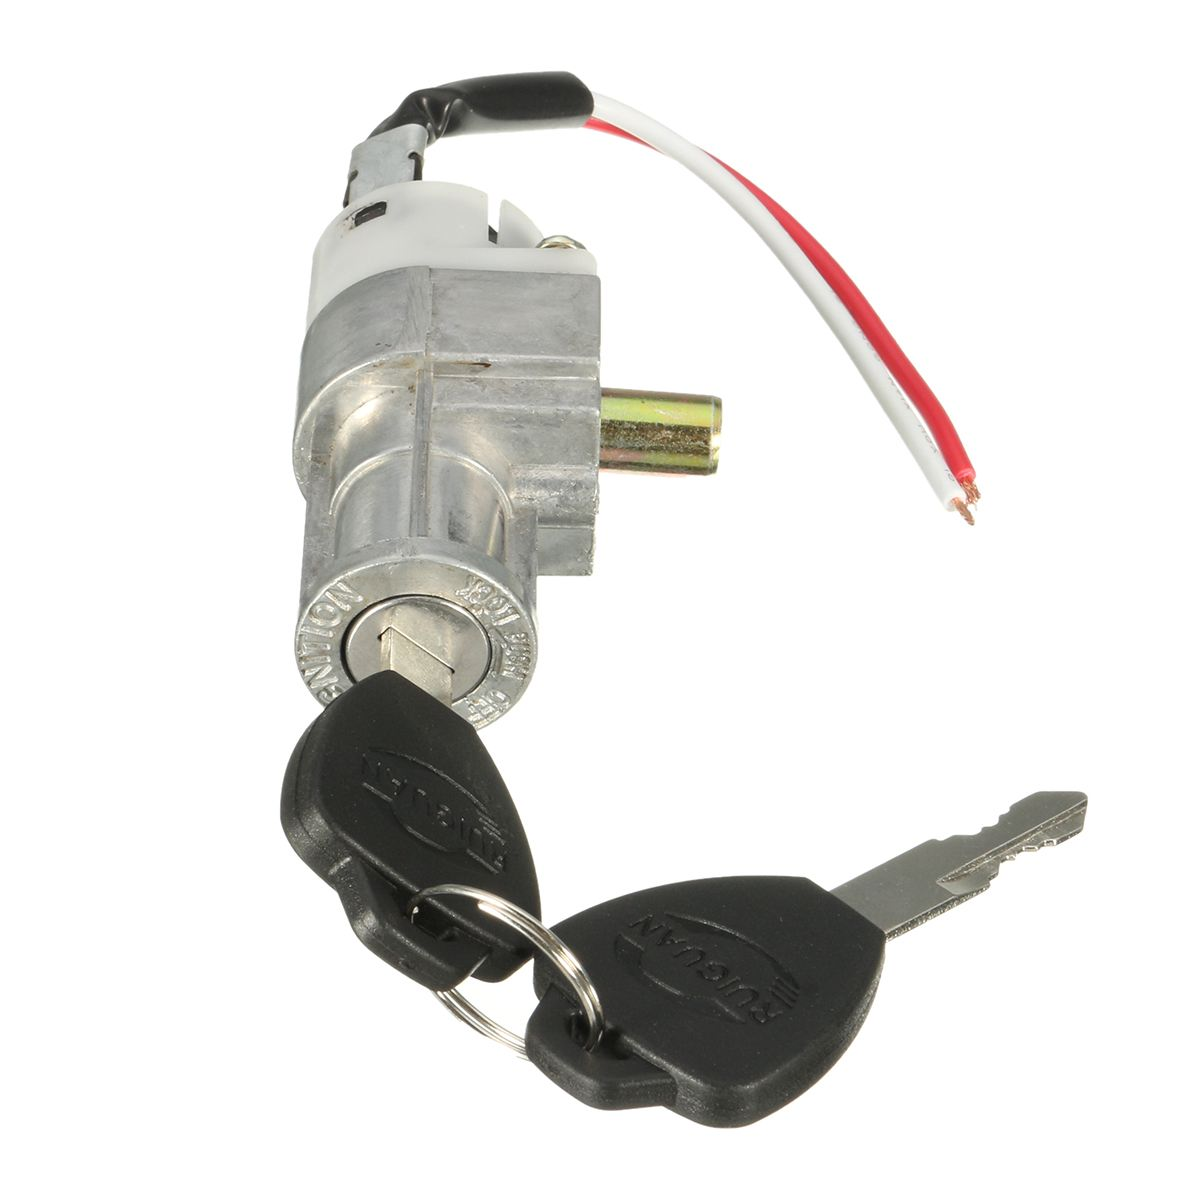 High Performance Universal Battery Chager Mini Lock With 2 Keys For Motorcycle Electric Bike Scooter E-bike Electric Lock